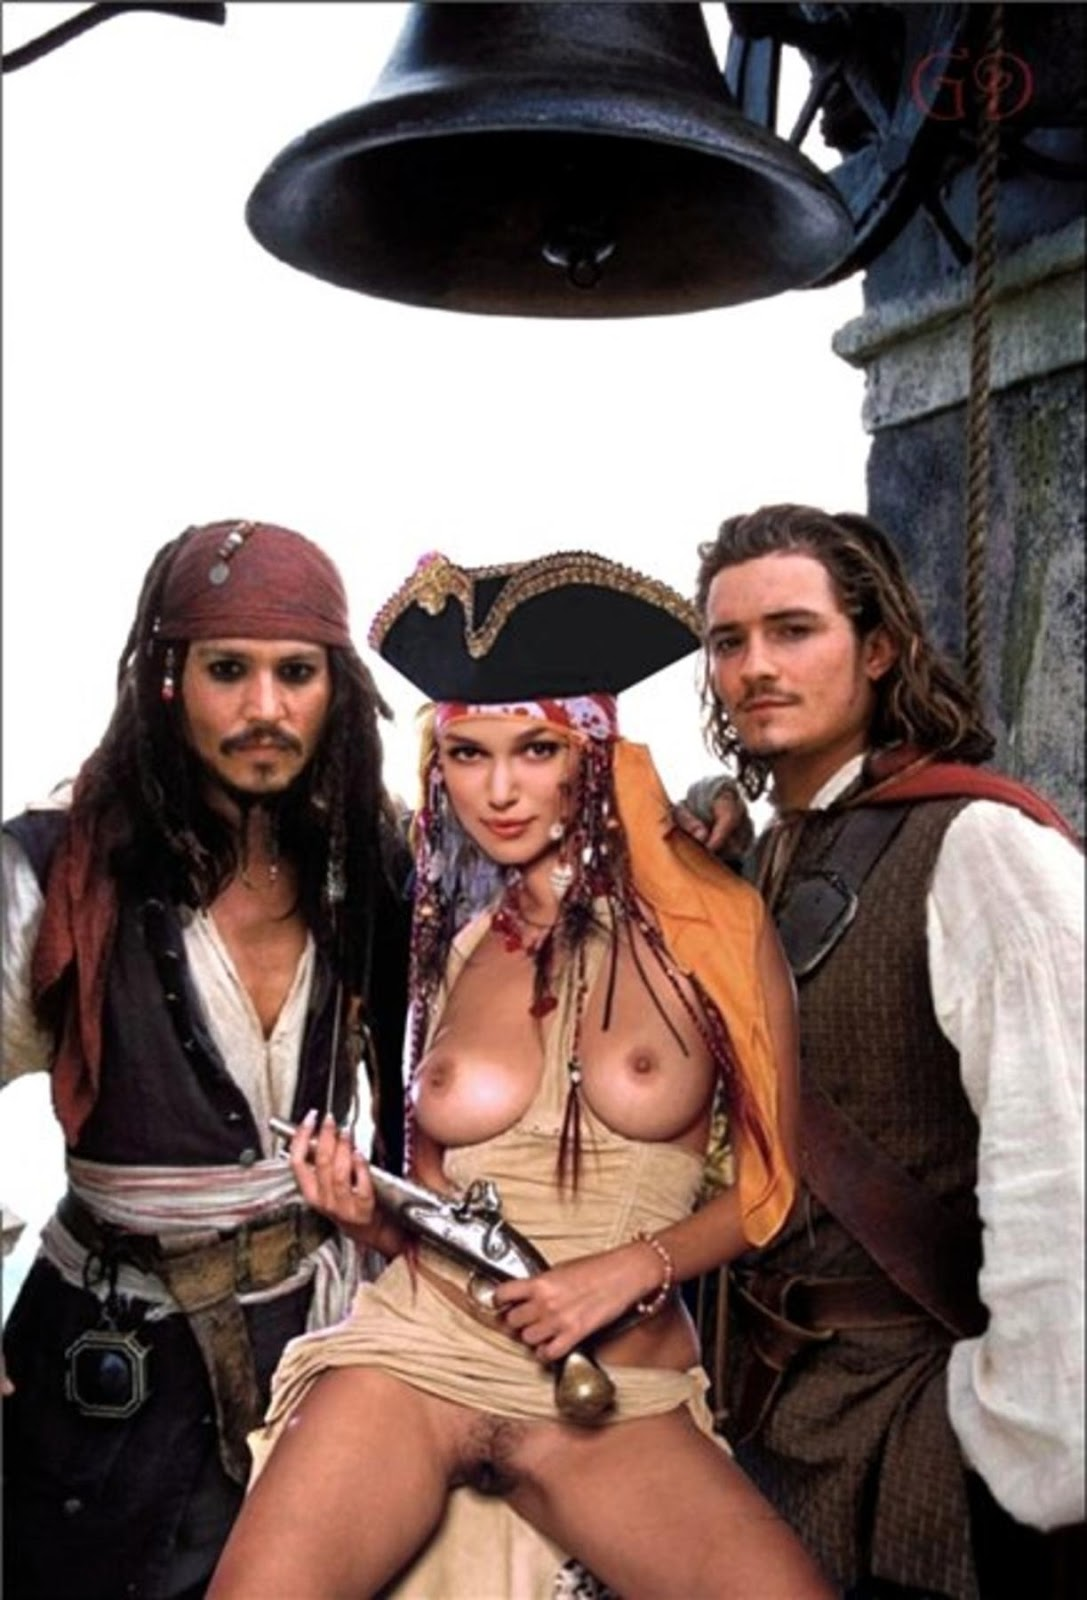 pirates of the caribbean adult movie